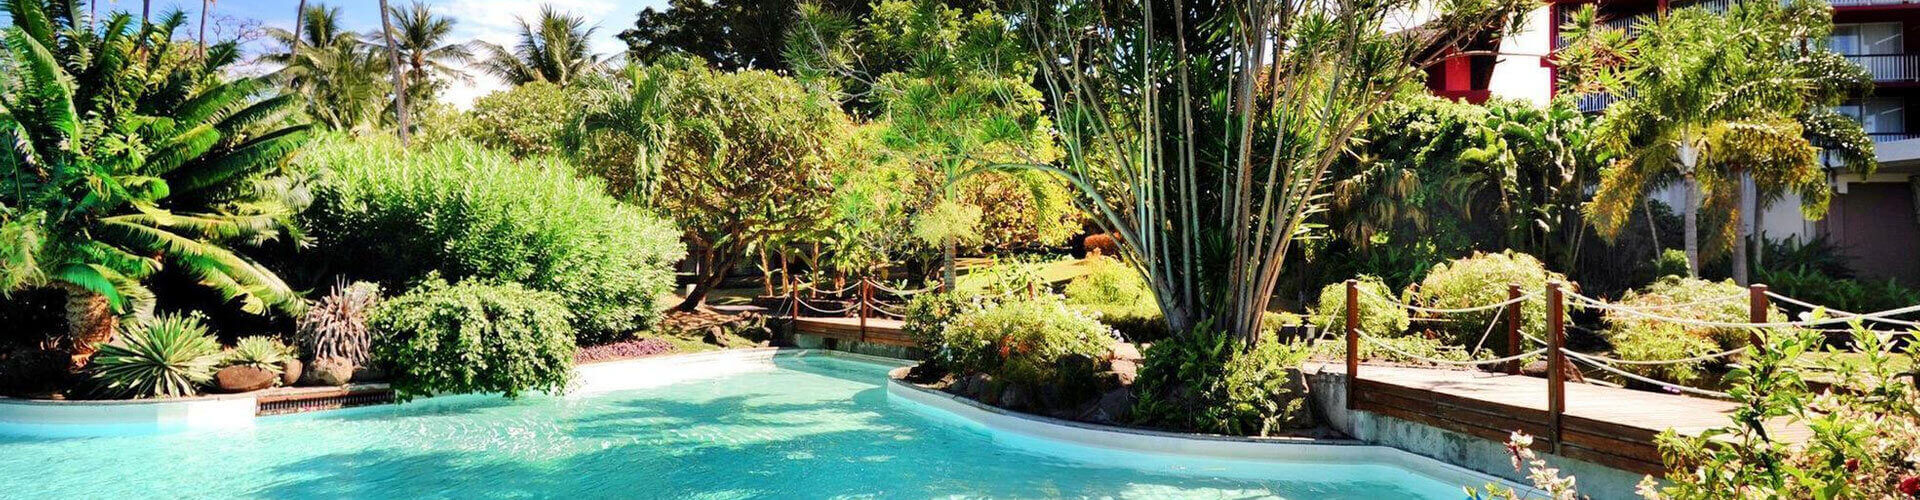 Photo of the merdien tahiti hotel with the swimming pool